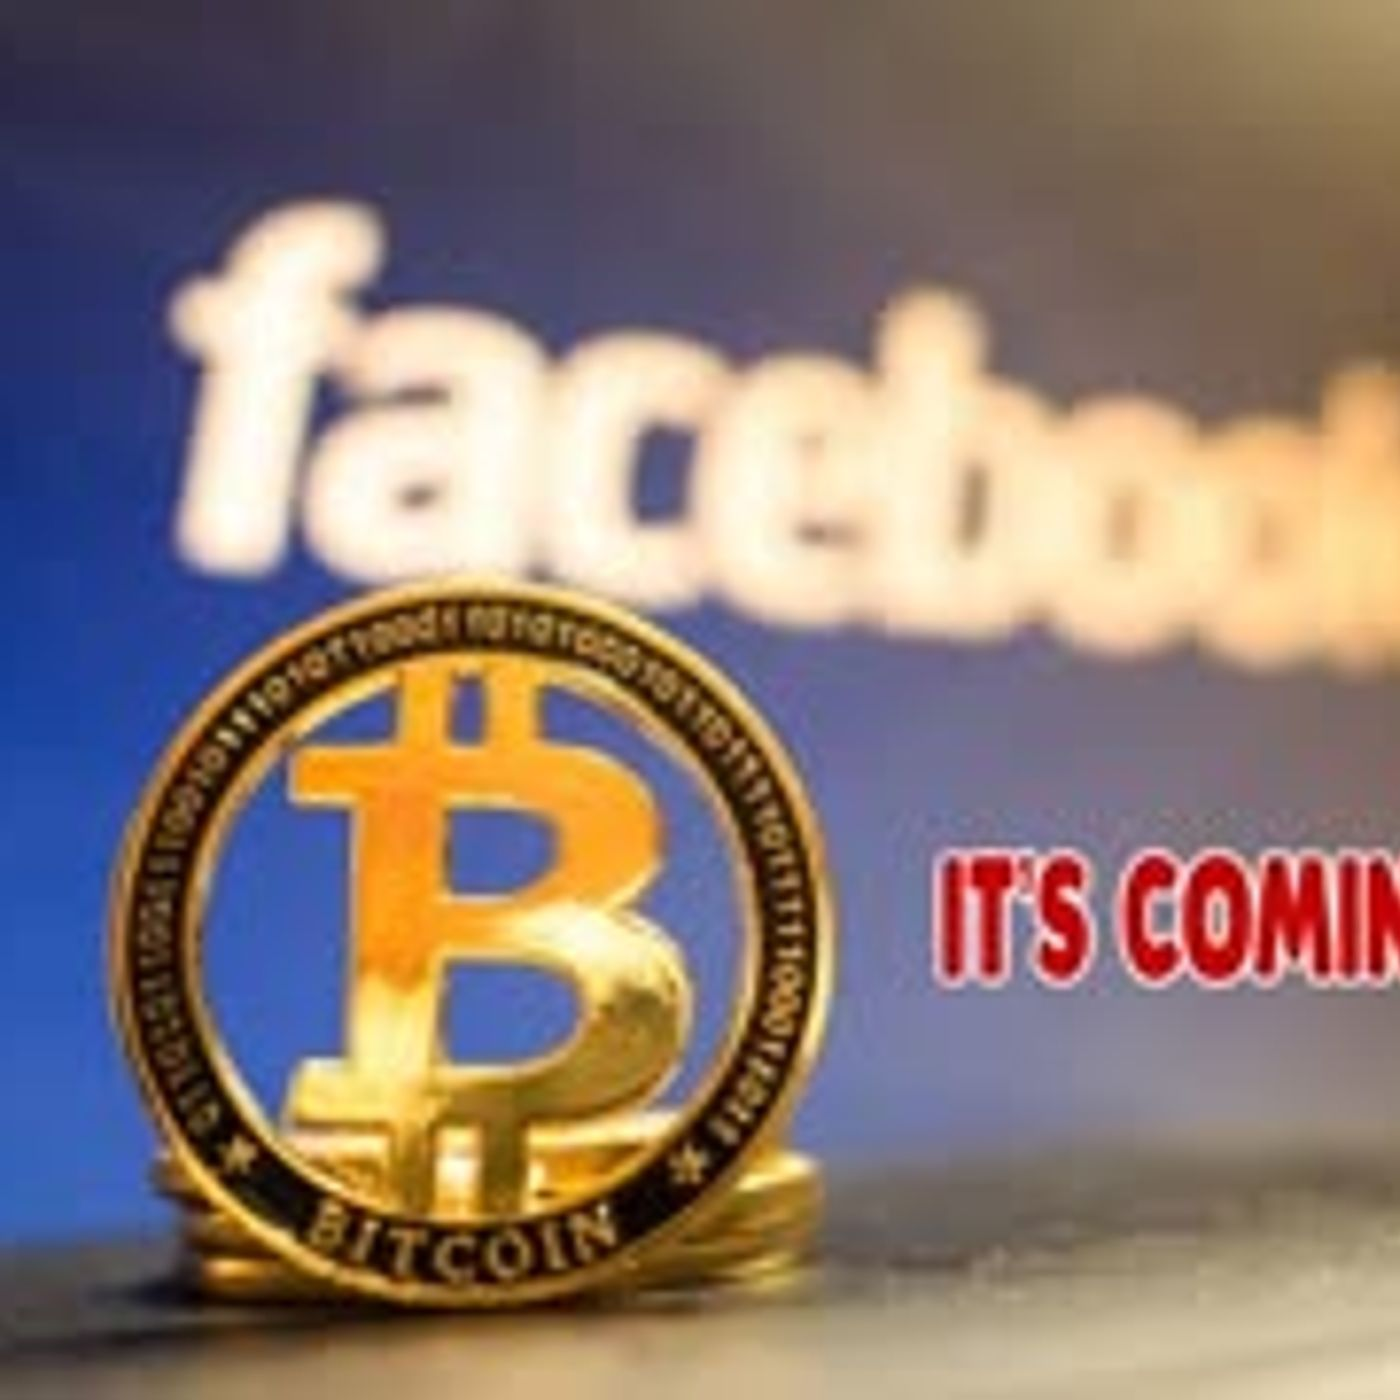 Facebook COIN Announcement and Launch June July - FBCOIN GO!